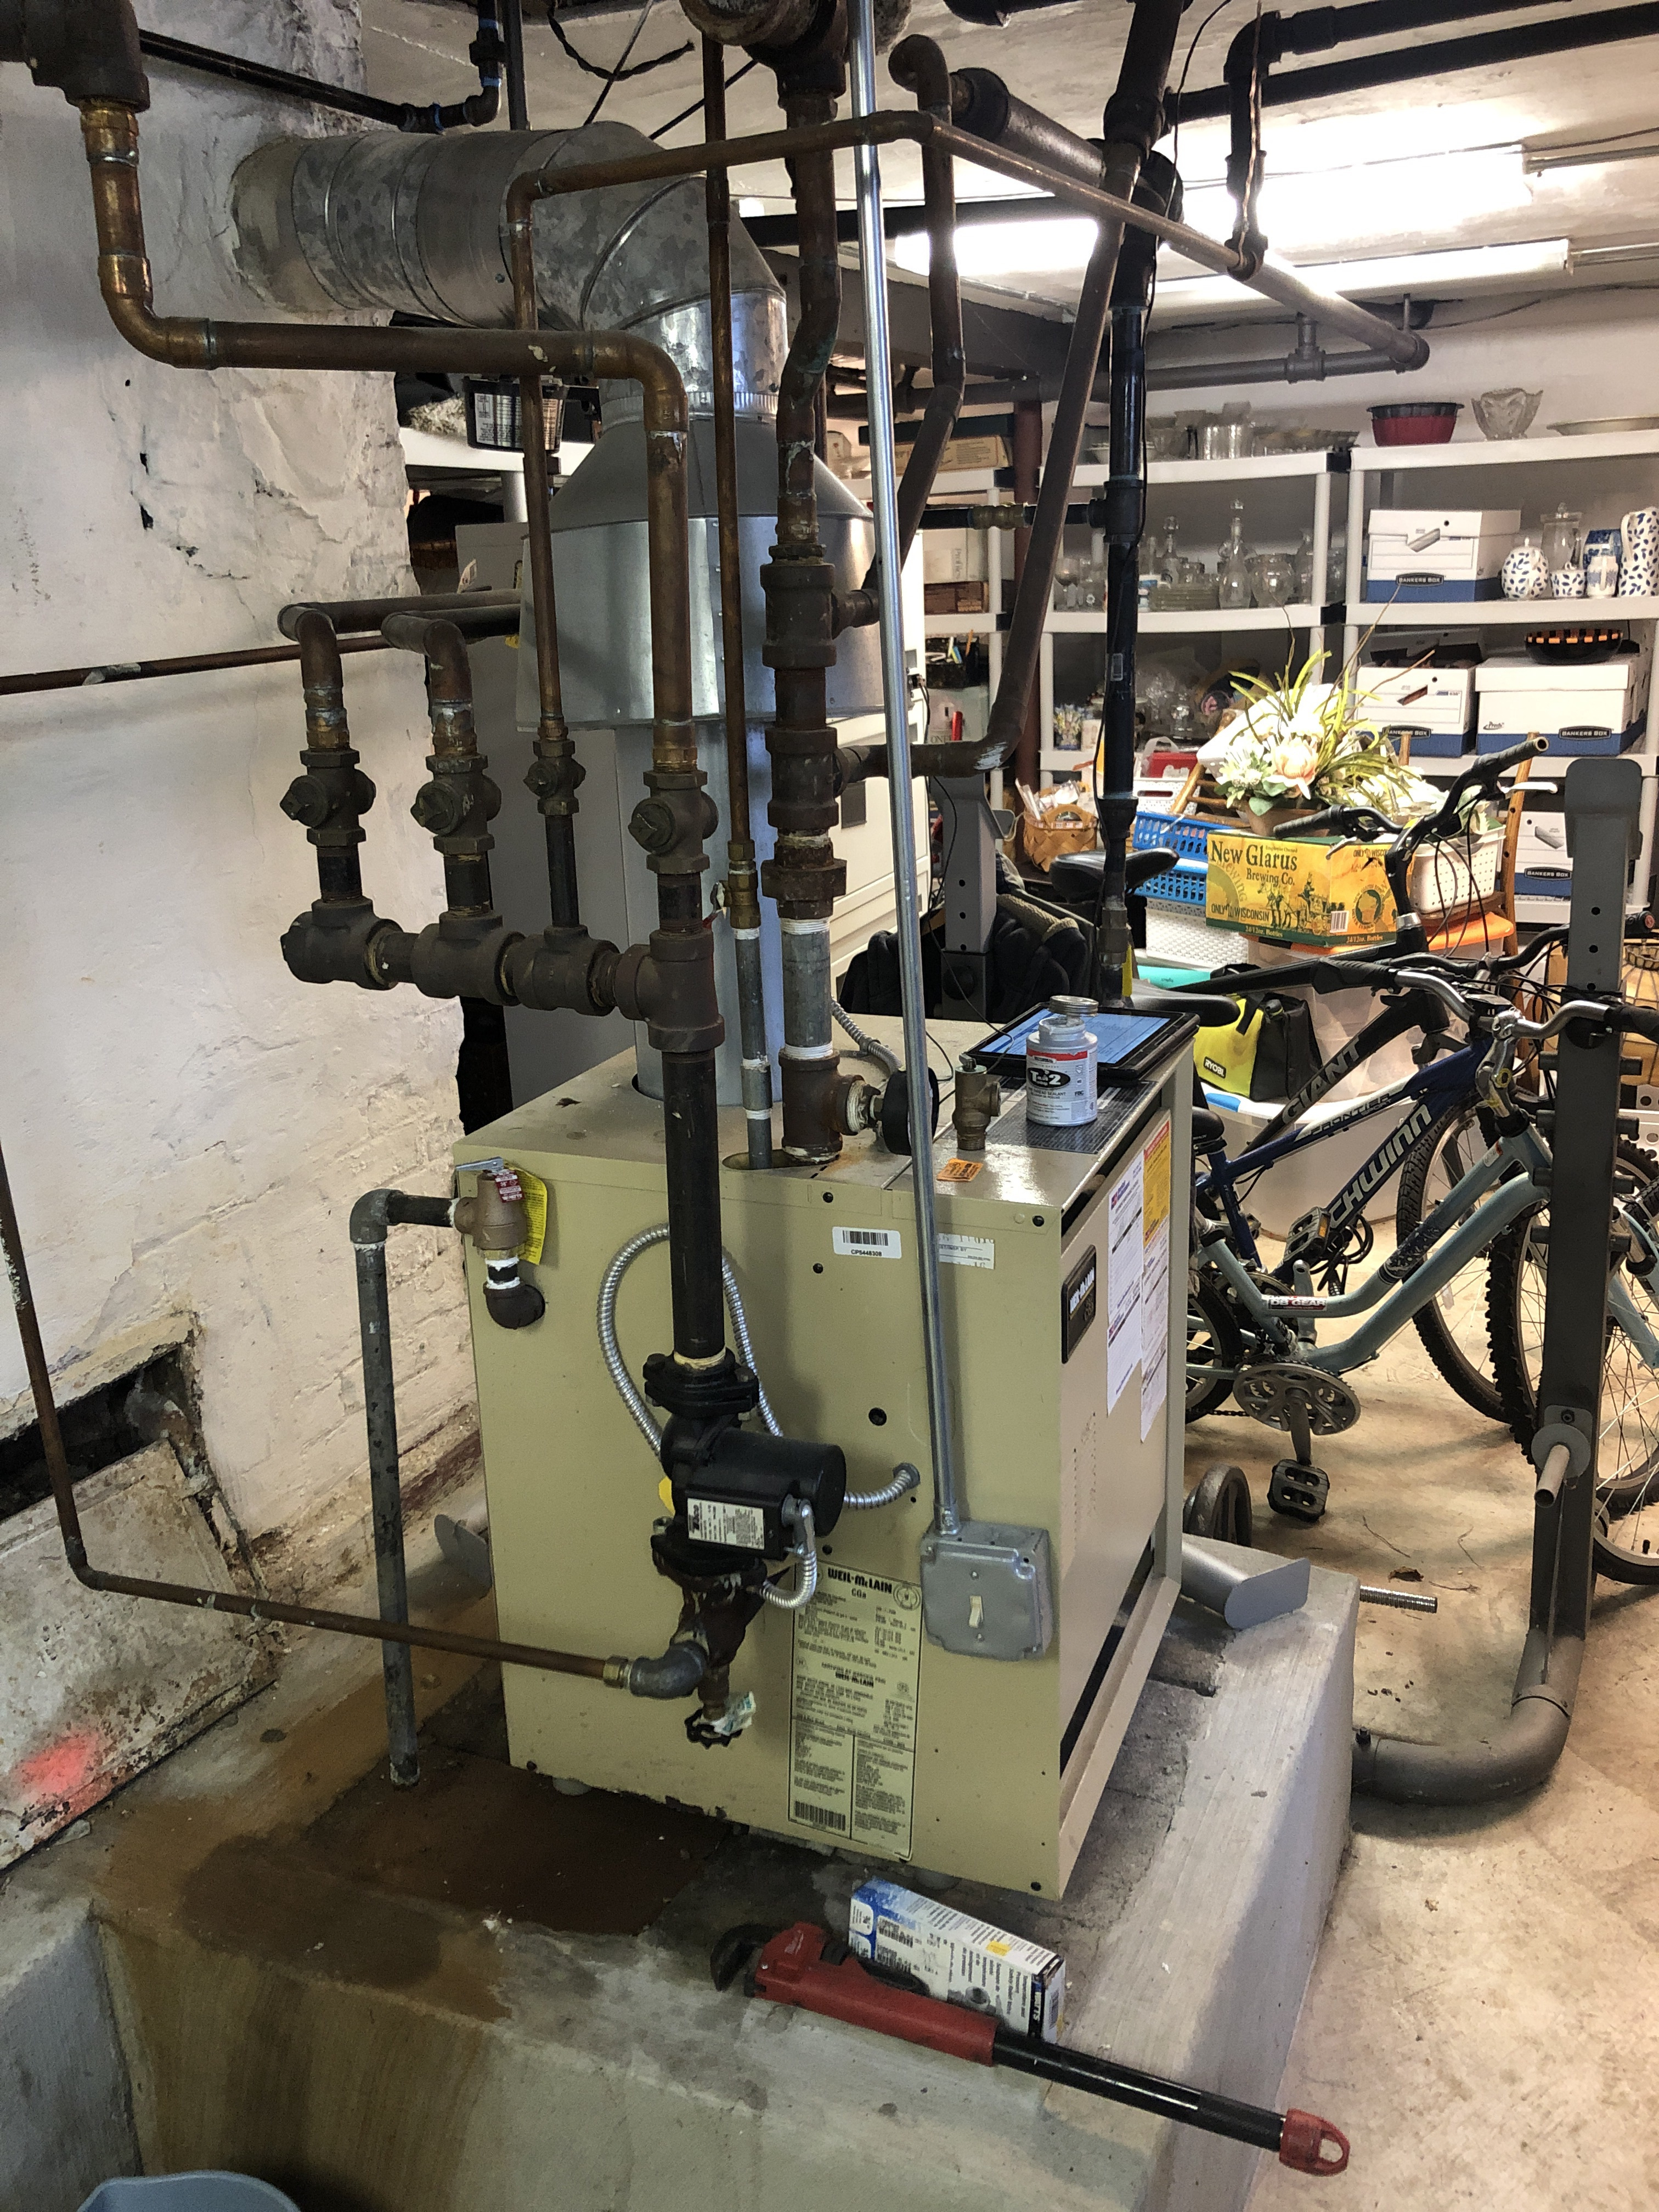 Provided club customer with annual preventative maintenance on boiler and took measures to ensure the life expectancy of the equipment. Also replaced an old relief valve which was dripping constantly.